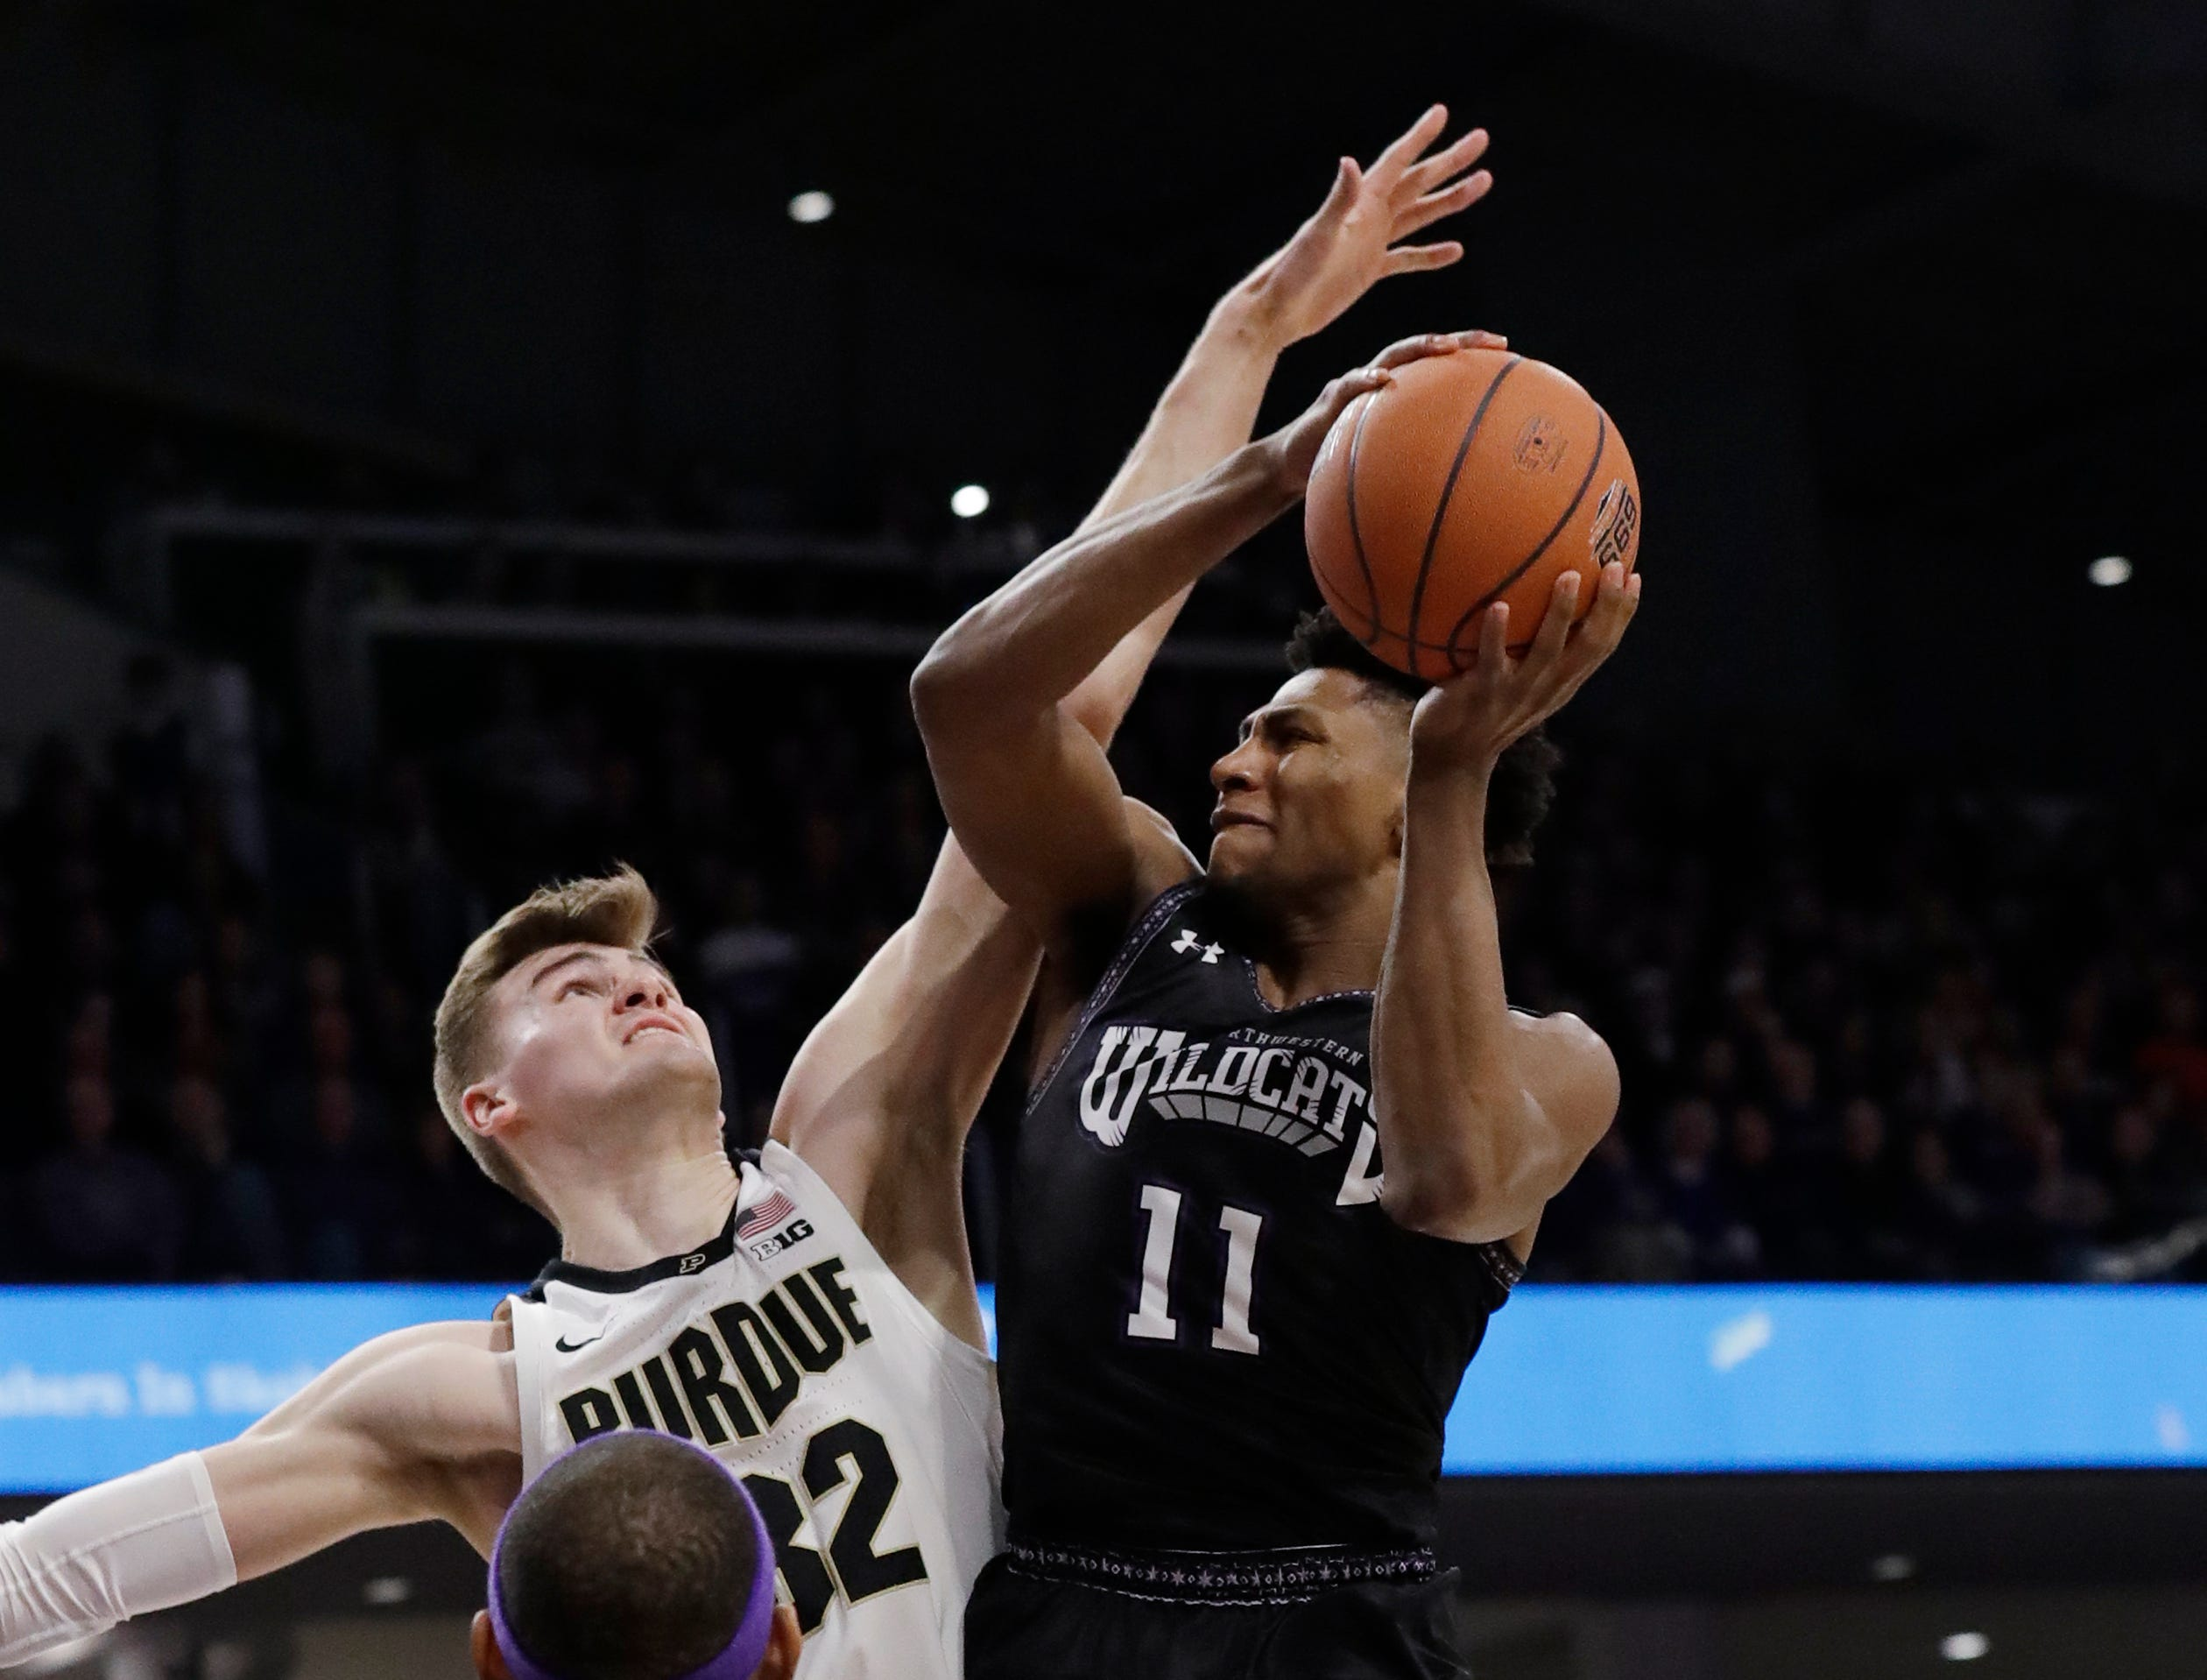 14. Northwestern (13-18, 4-16): The Wildcats ended their 10-game skid, beating Ohio State to win for the first time since late January. It hardly salvaged a season that was off the rails before the new year but it at least gives the Wildcats a small bit of momentum as they head down the road a few miles for next week's Big Ten tournament. Last week: 14.